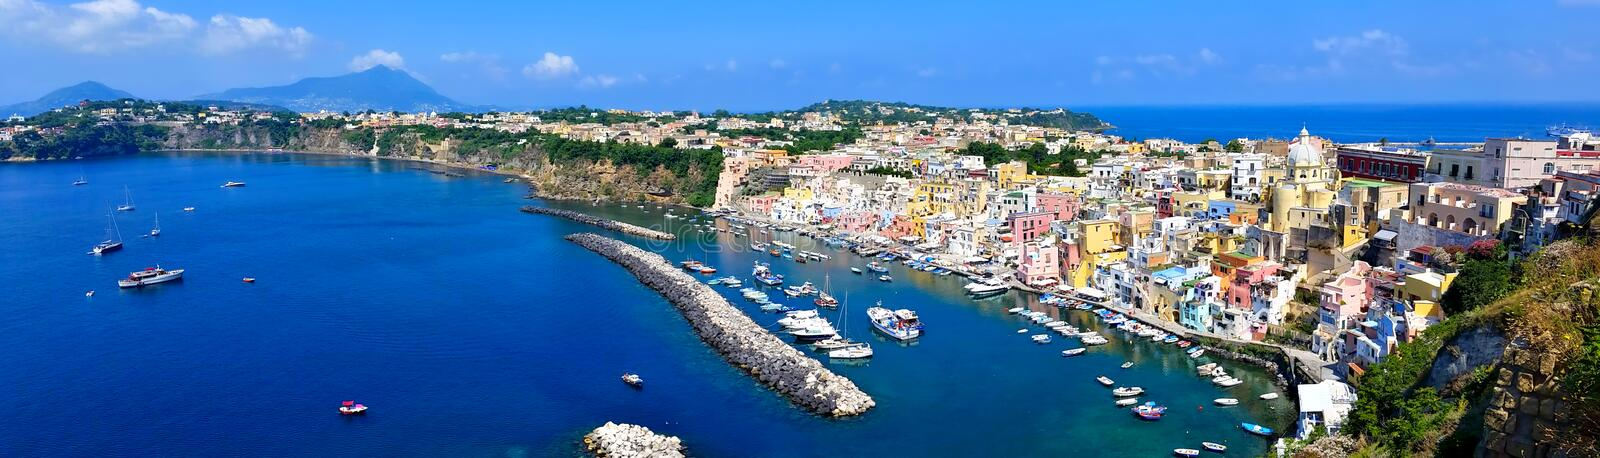 Beautiful island town in Italy, panoramic aerial view of harbor and colorful pastel buildings of Procida stock photography